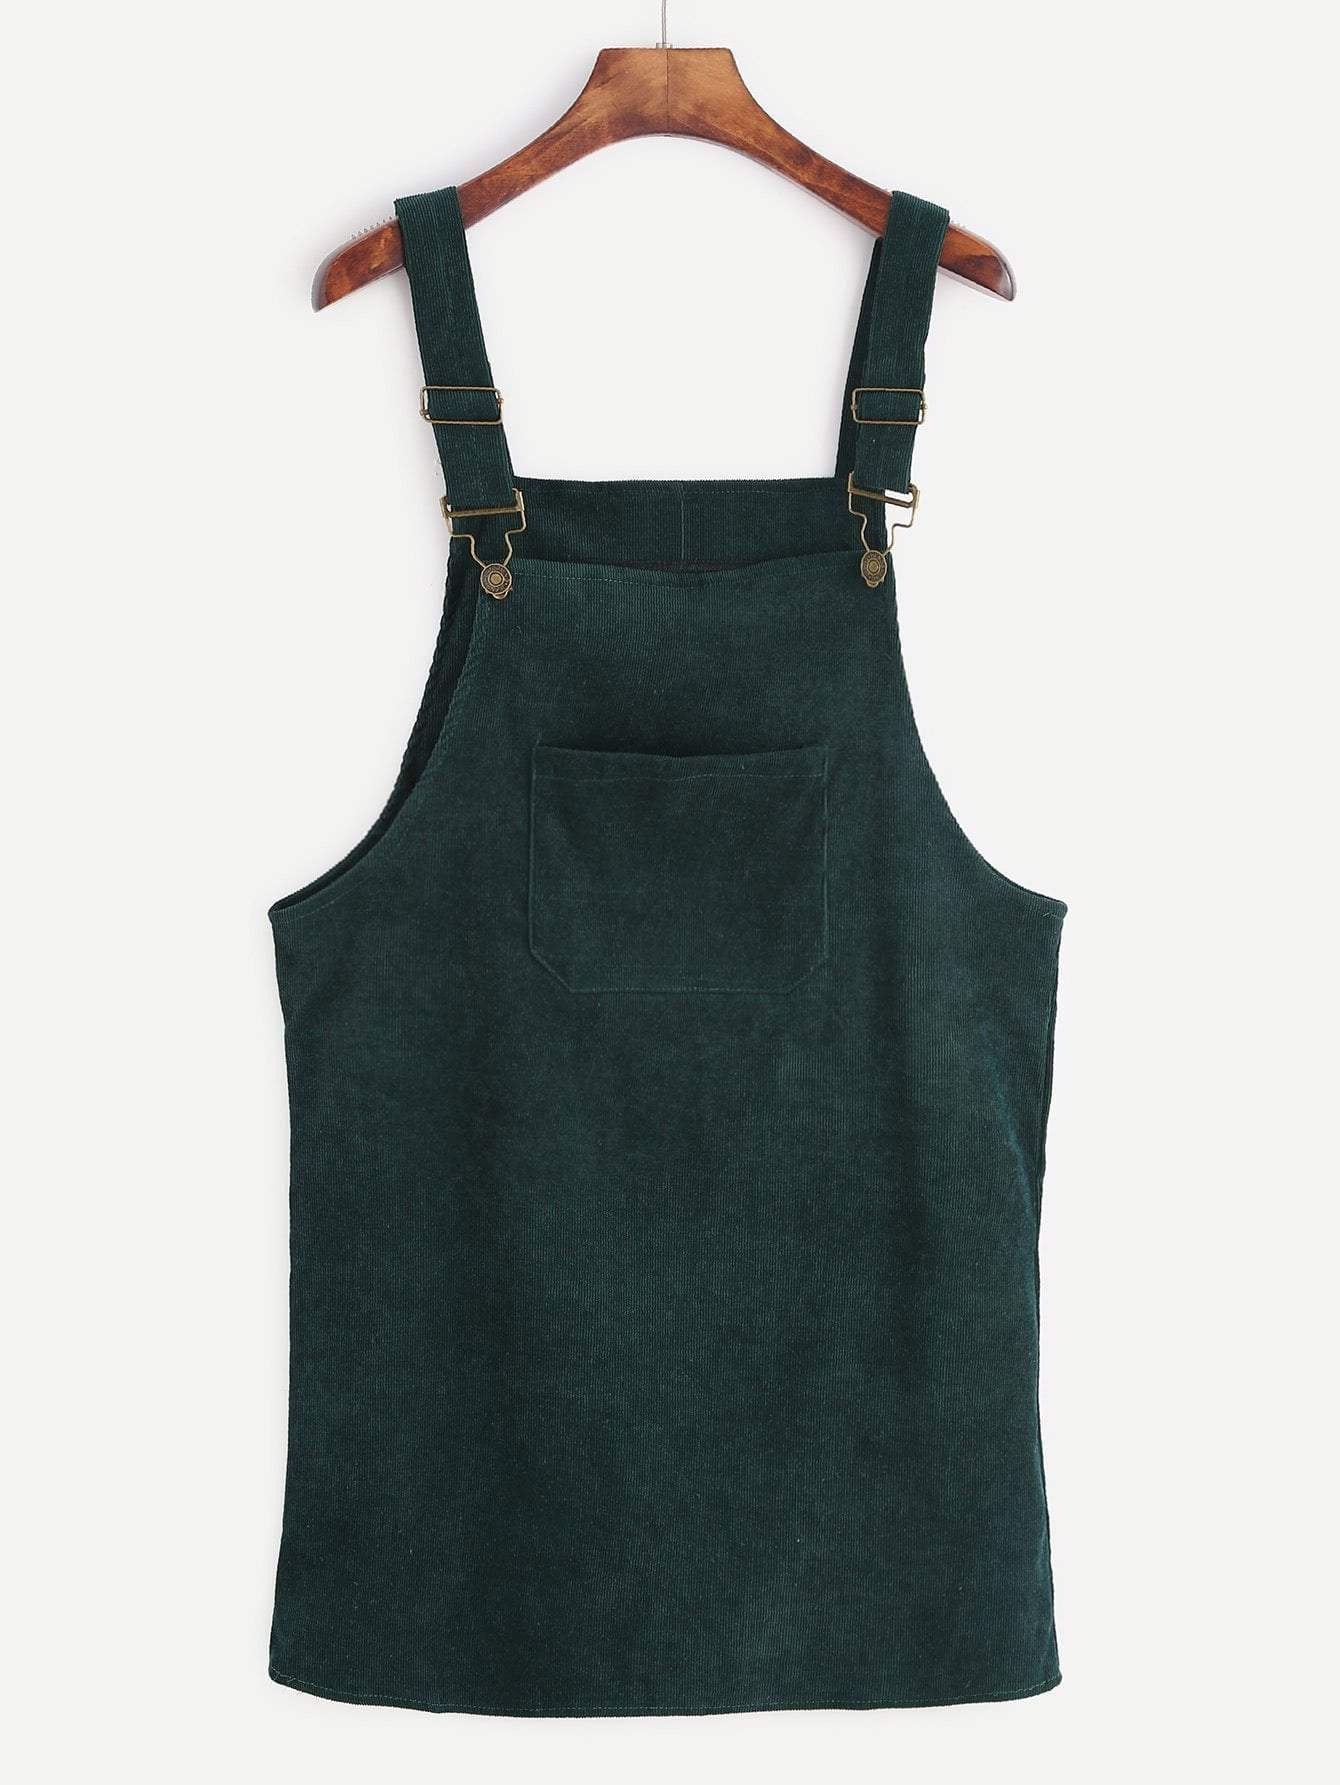 Corduroy Overall Dress With Pocket - Dresses - Zooomberg - Zoomberg